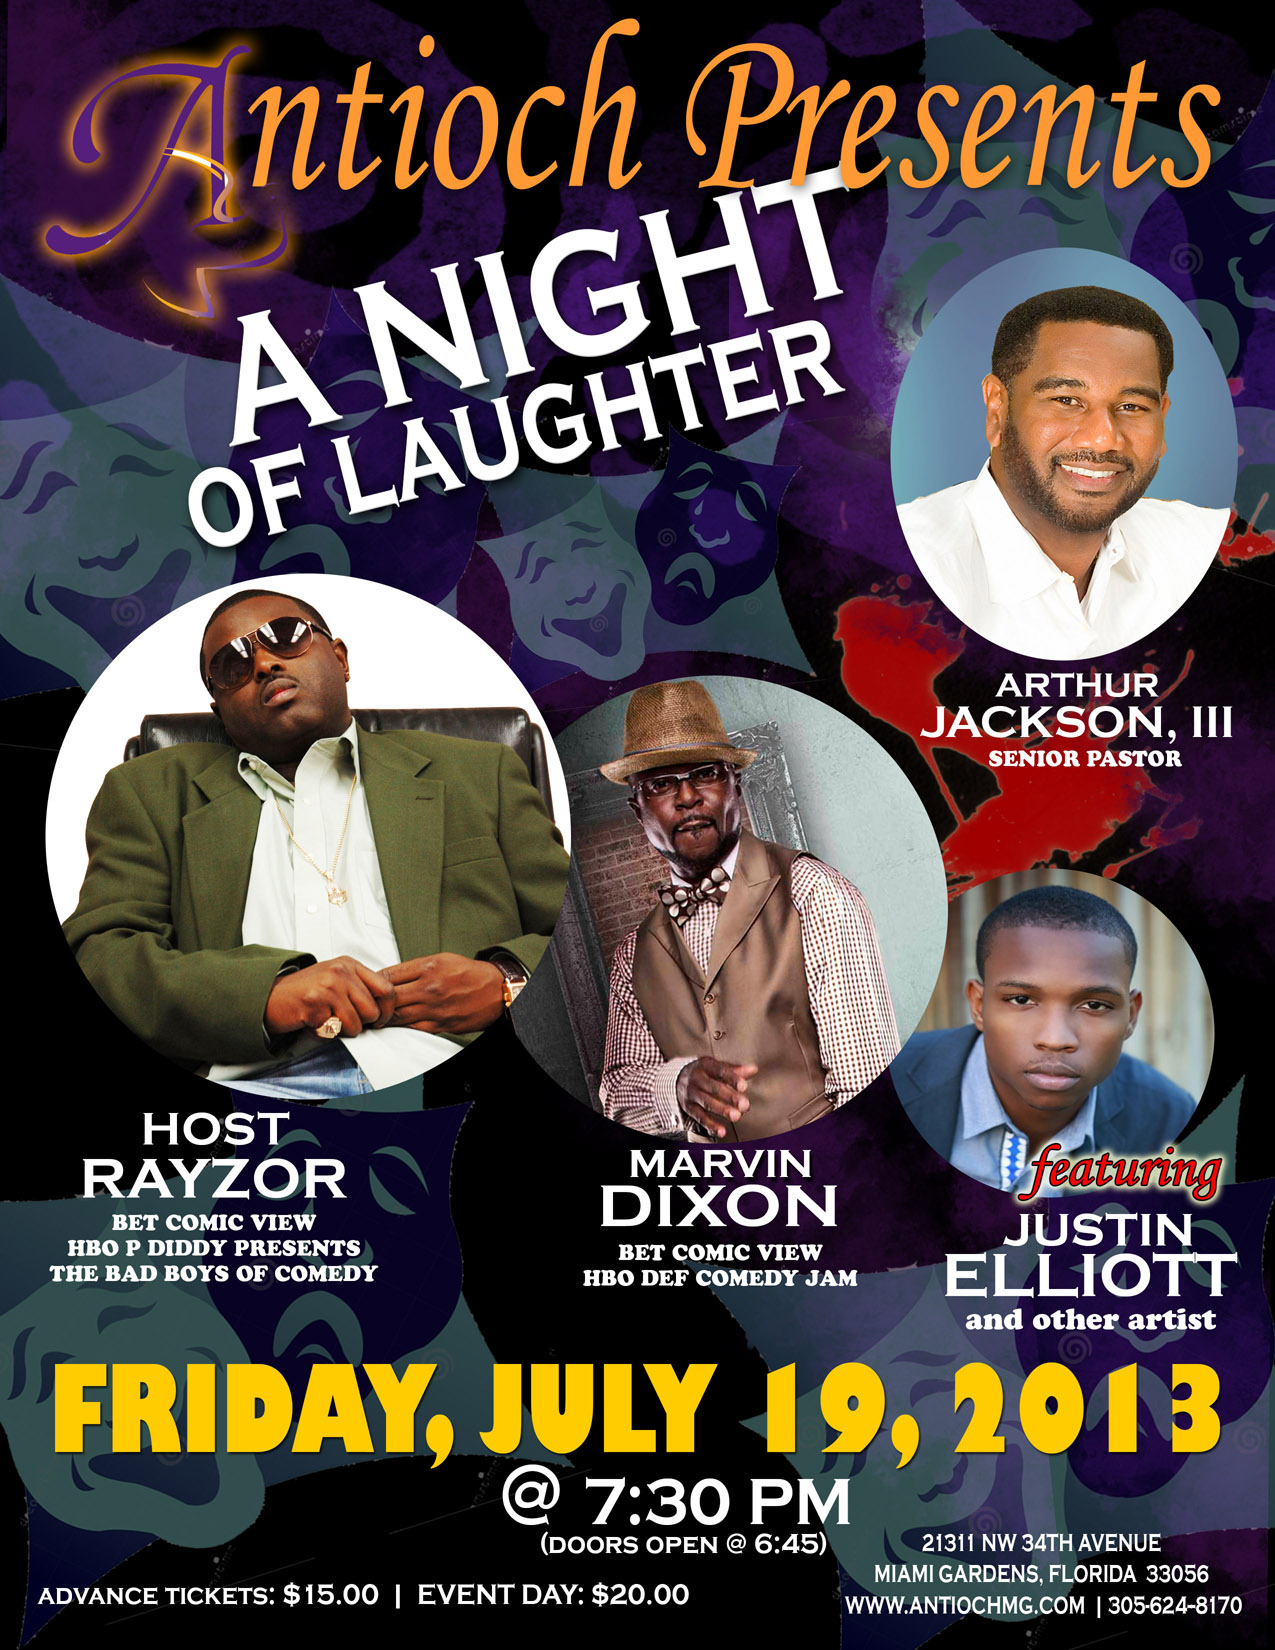 A Night Of Laughter Tickets Fri Jul 19 2013 At 7 30 Pm Eventbrite